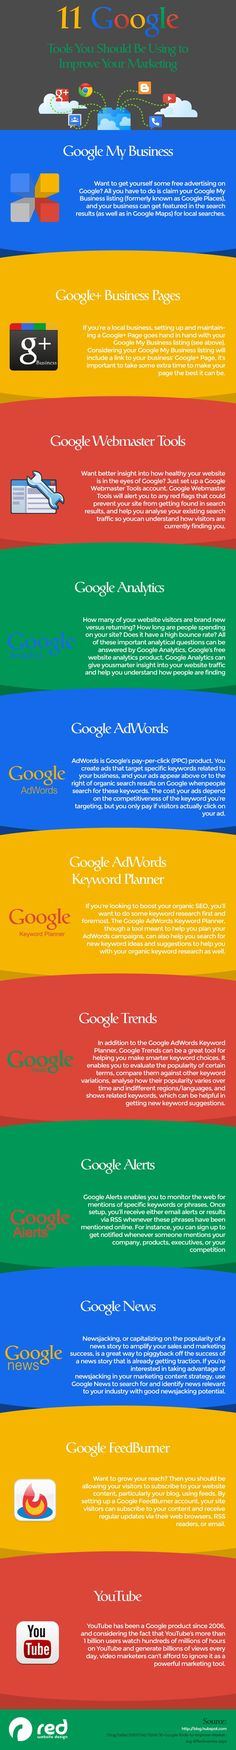 11 Google Tools You Should Be Using To Improve Your Marketing #infographic